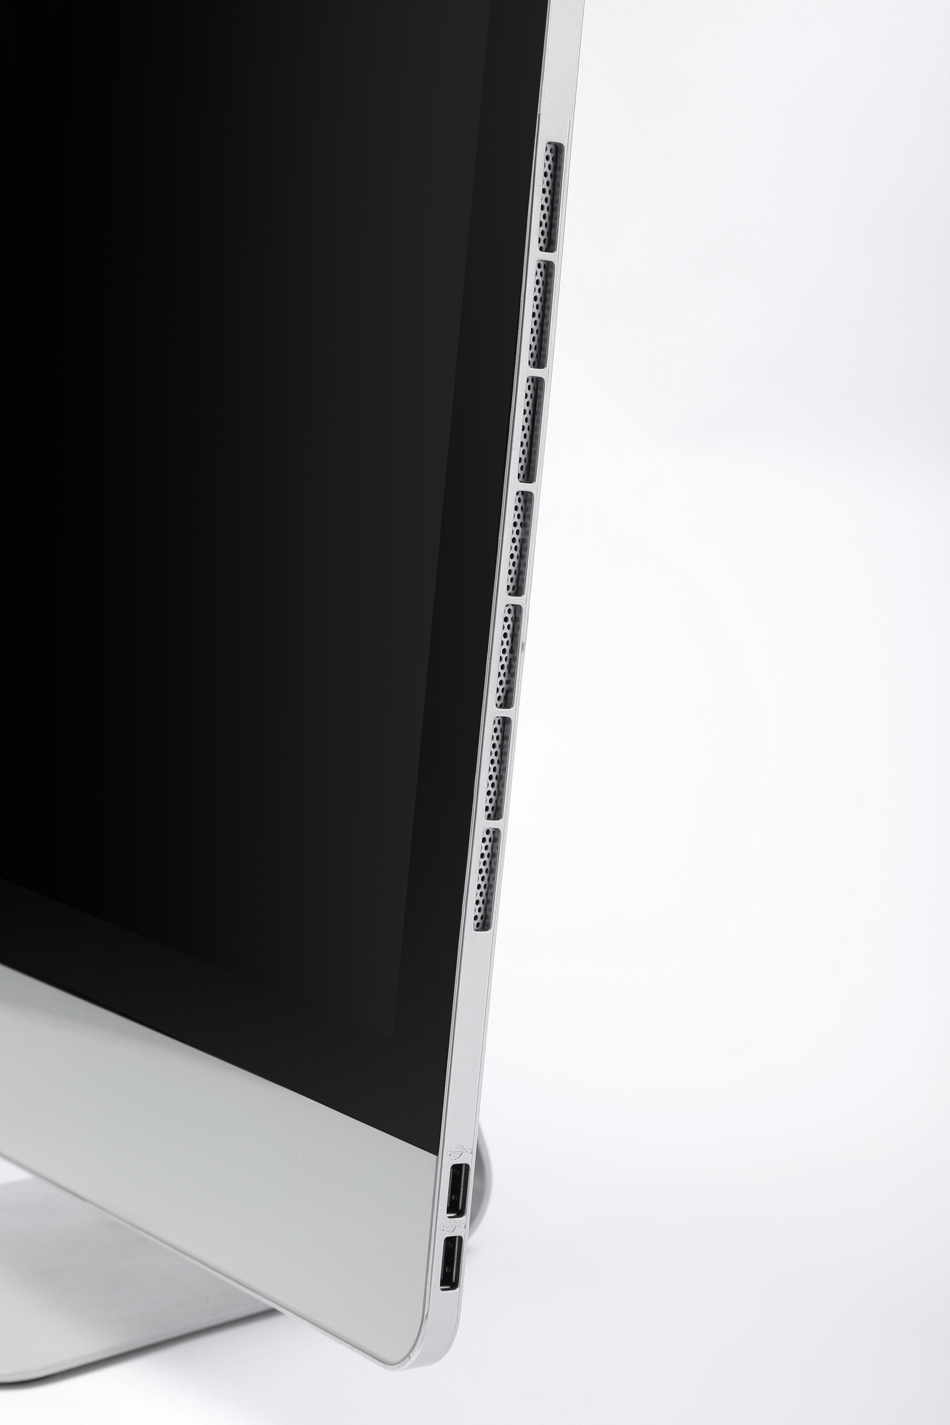 """21.5"""" All in One Computer, White Color 10mm Ultrathin"""